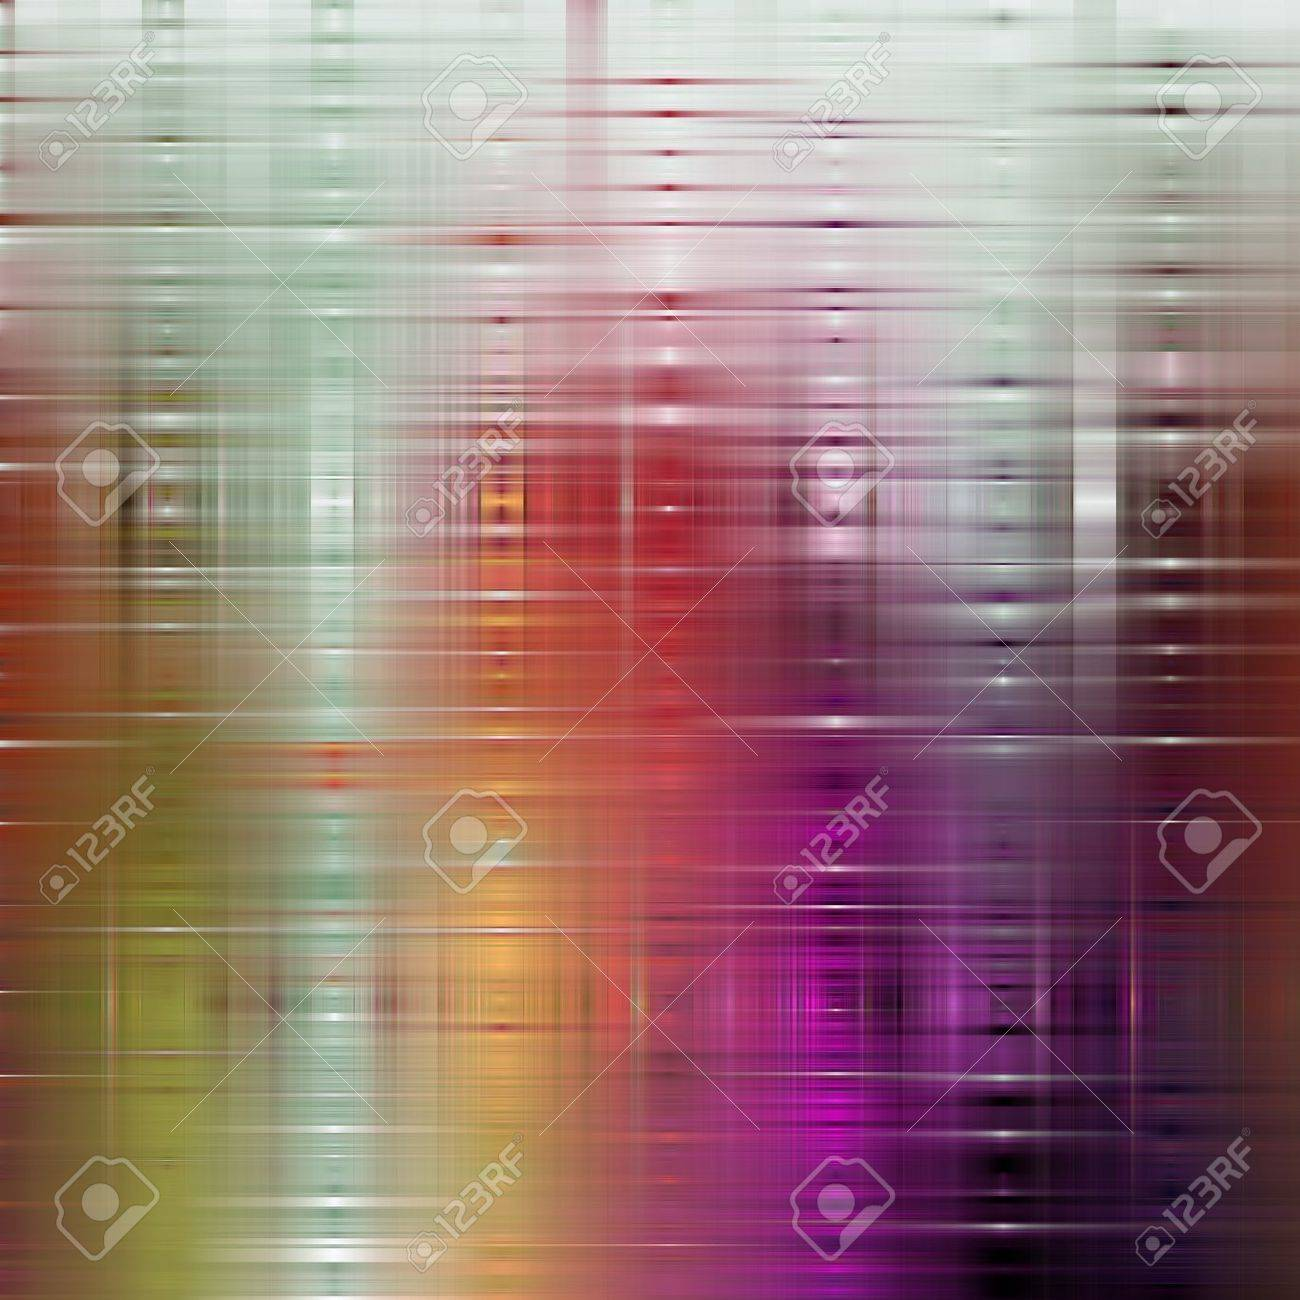 Abstract illustrated glass background pattern Stock Photo - 9208159